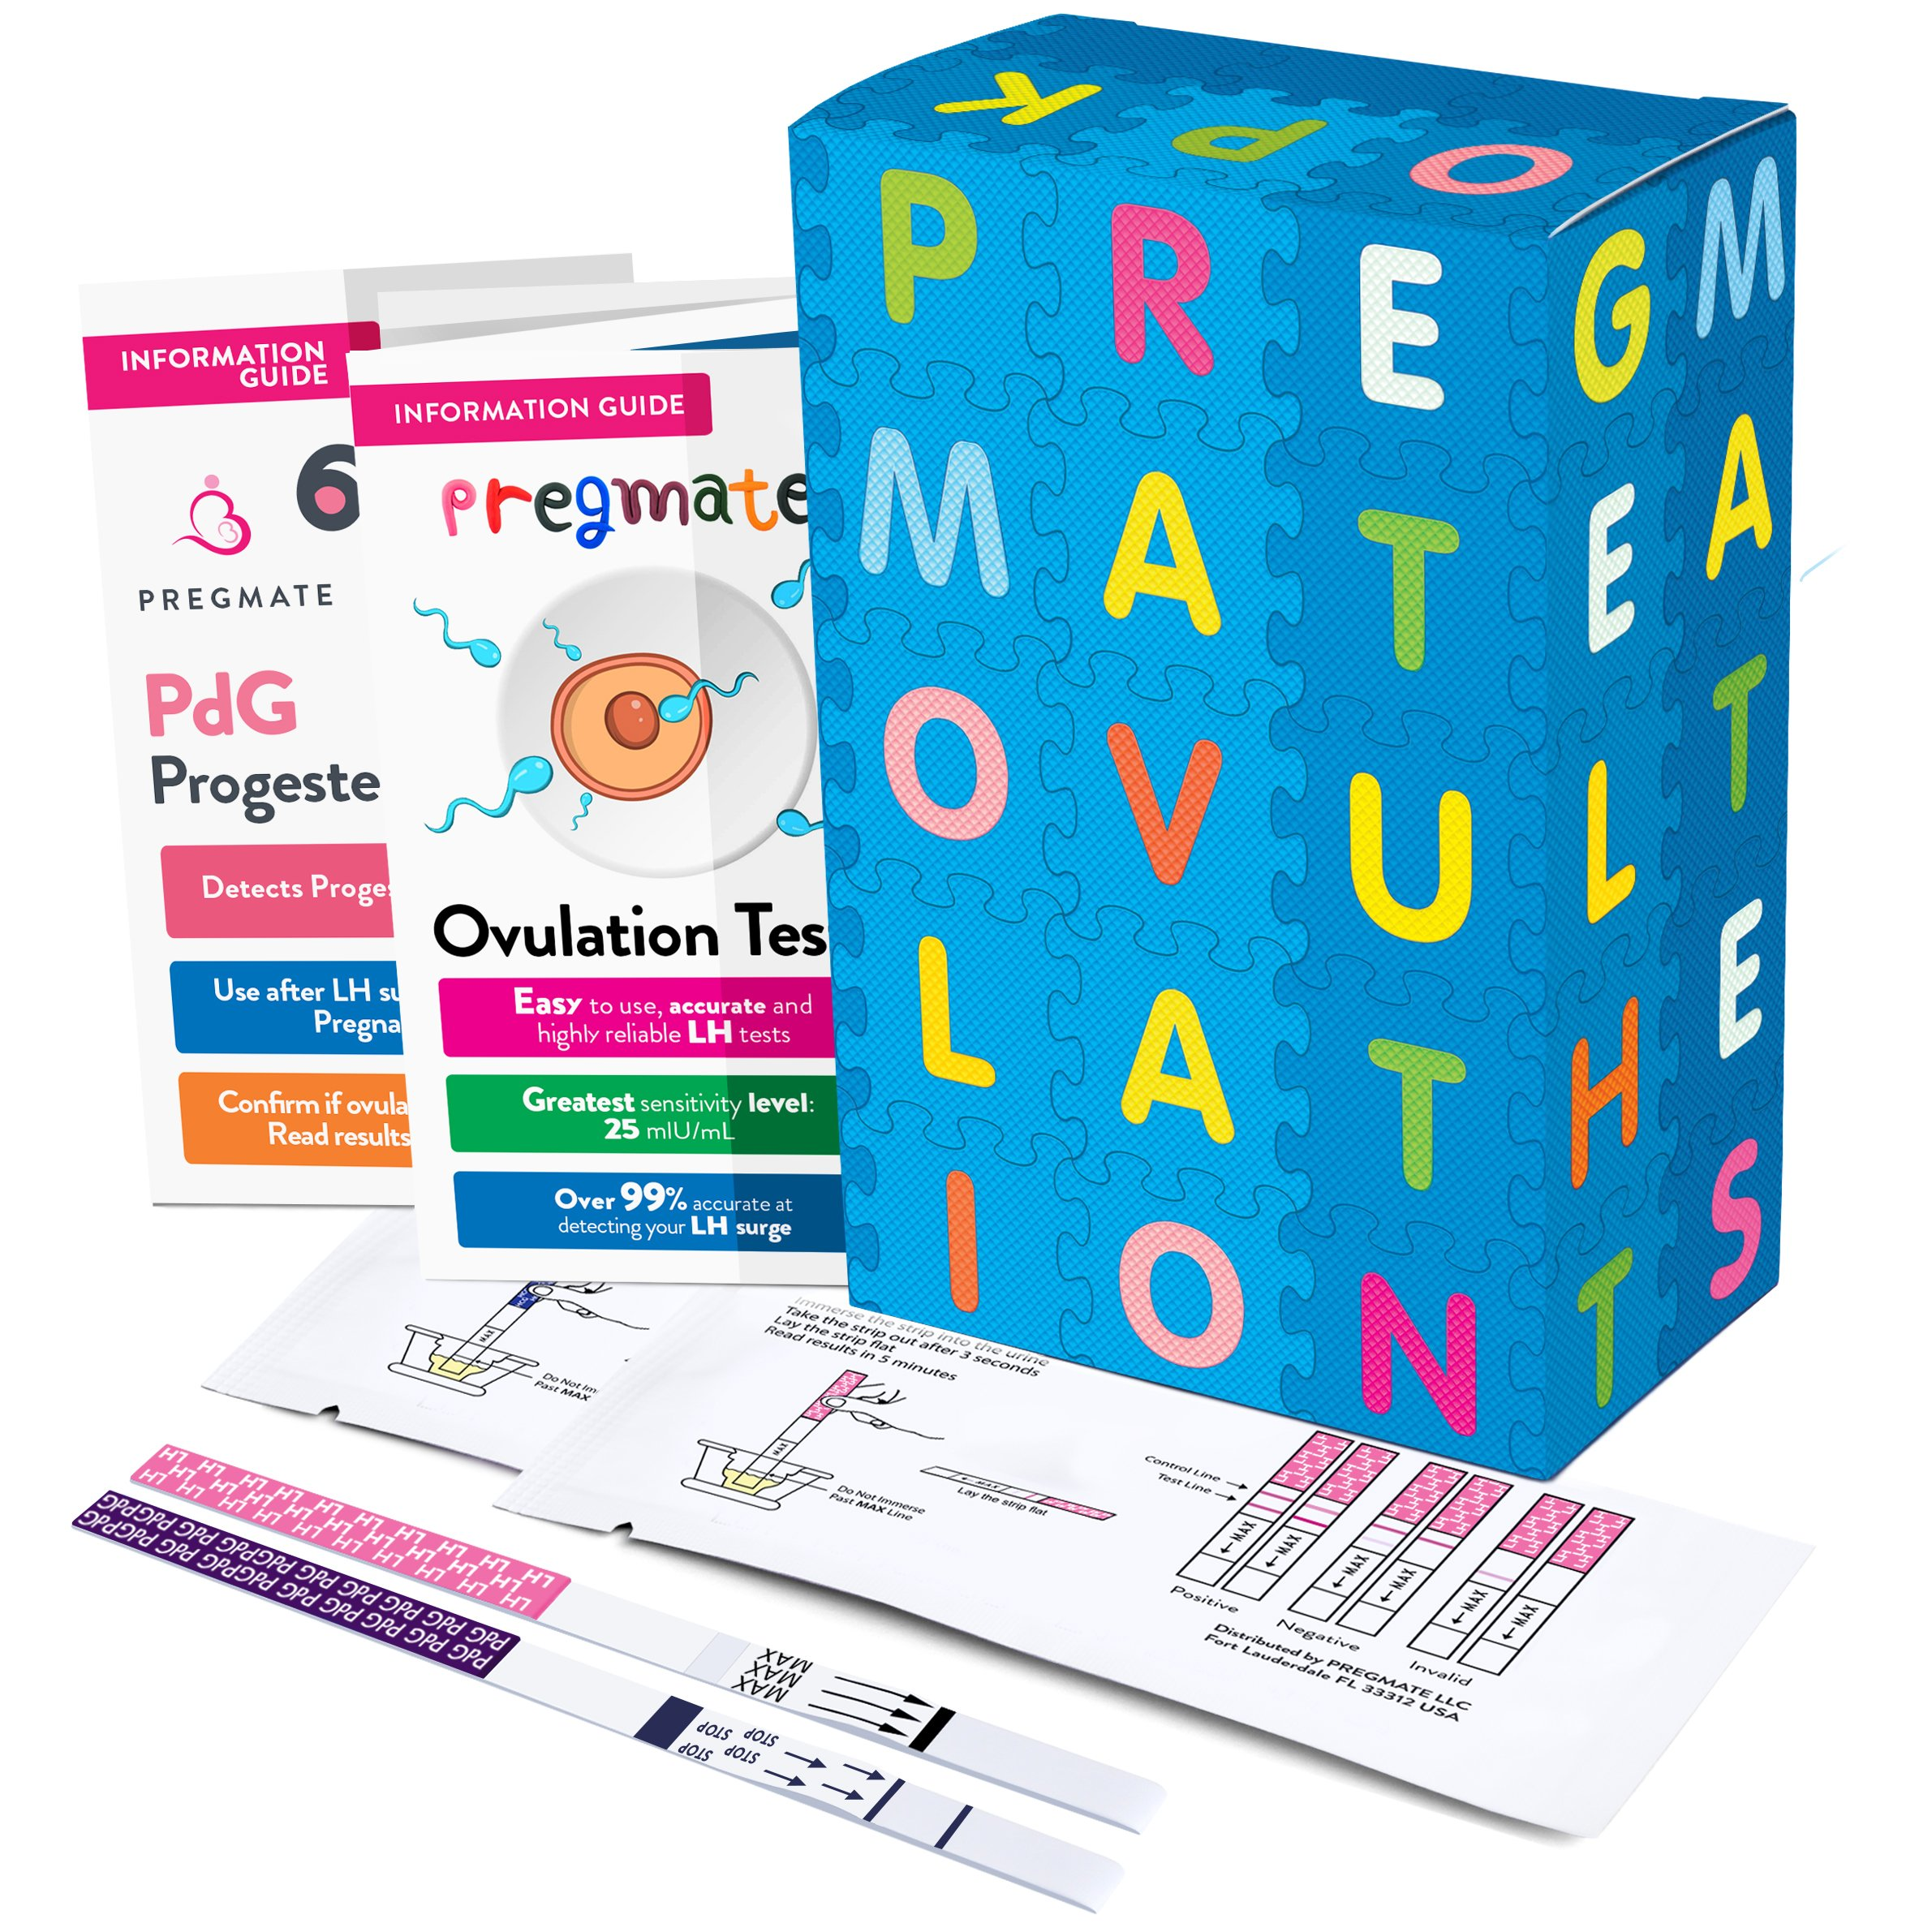 PREGMATE 25 Ovulation (LH) and 3 Progesterone (PdG) Urine Test Strips At Home Fertility Confirmation Predictor Kit (25 LH + 3 PdG)